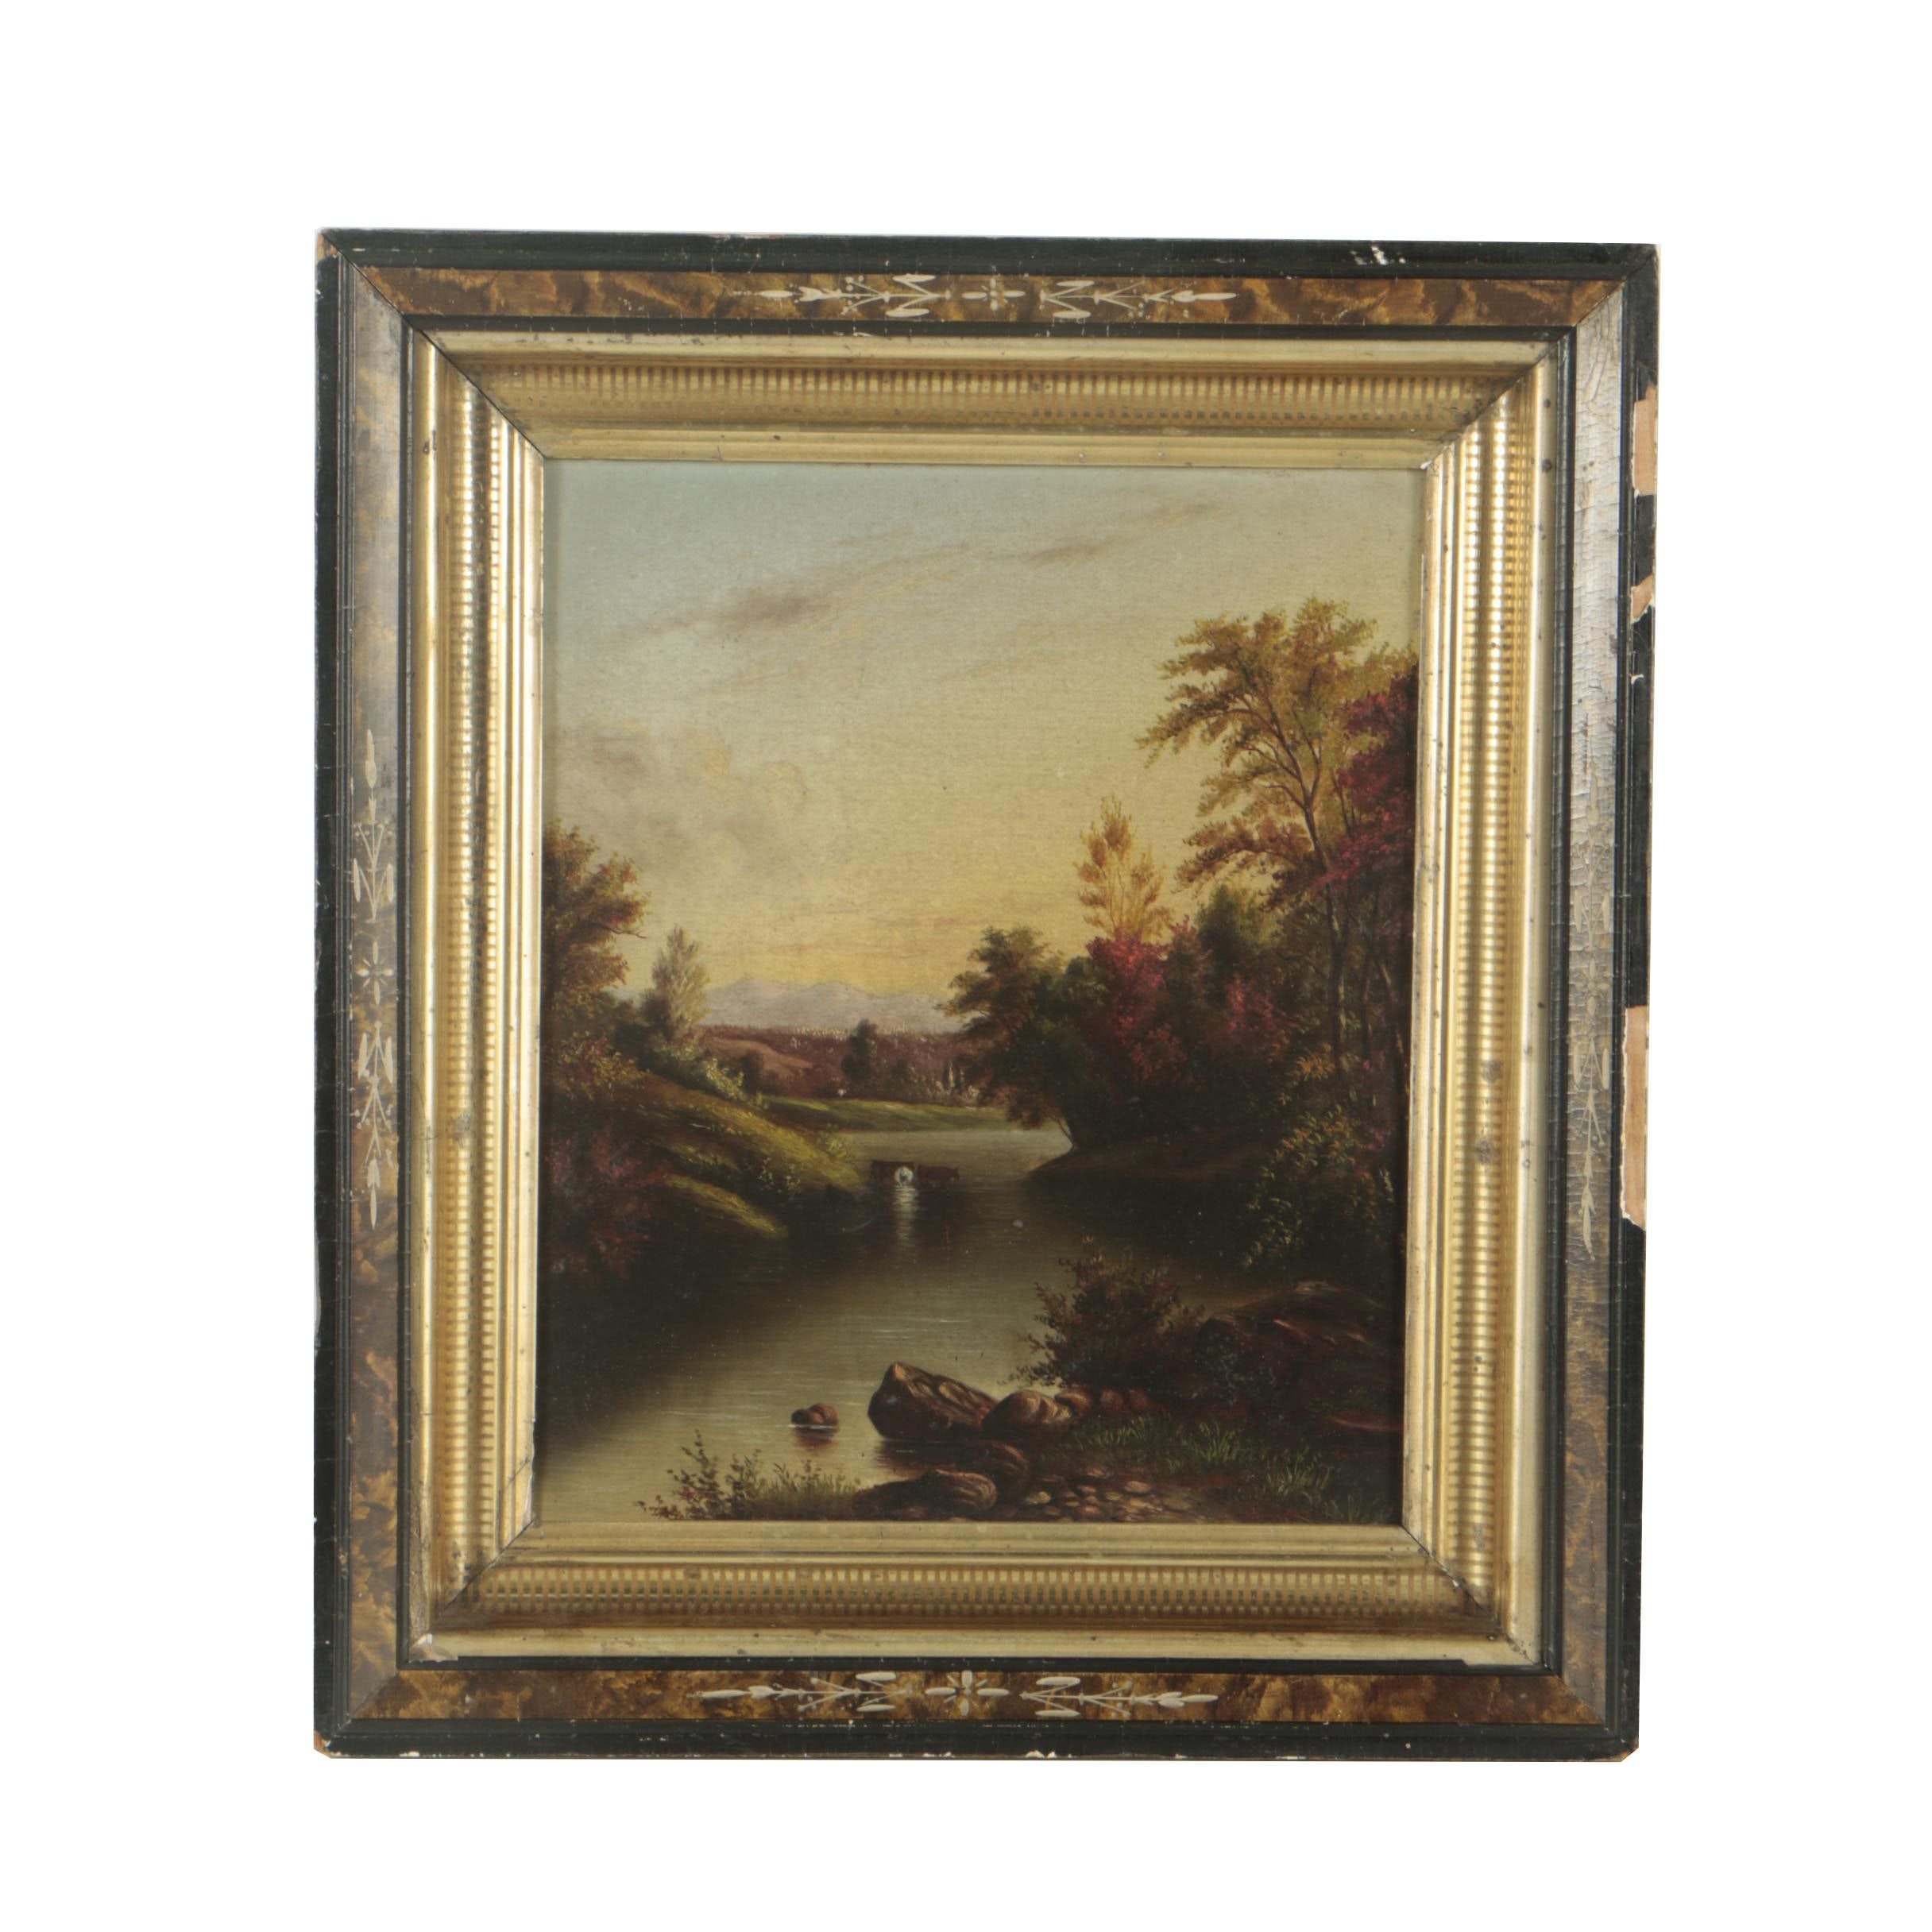 19th Century Oil Painting of a River Landscape